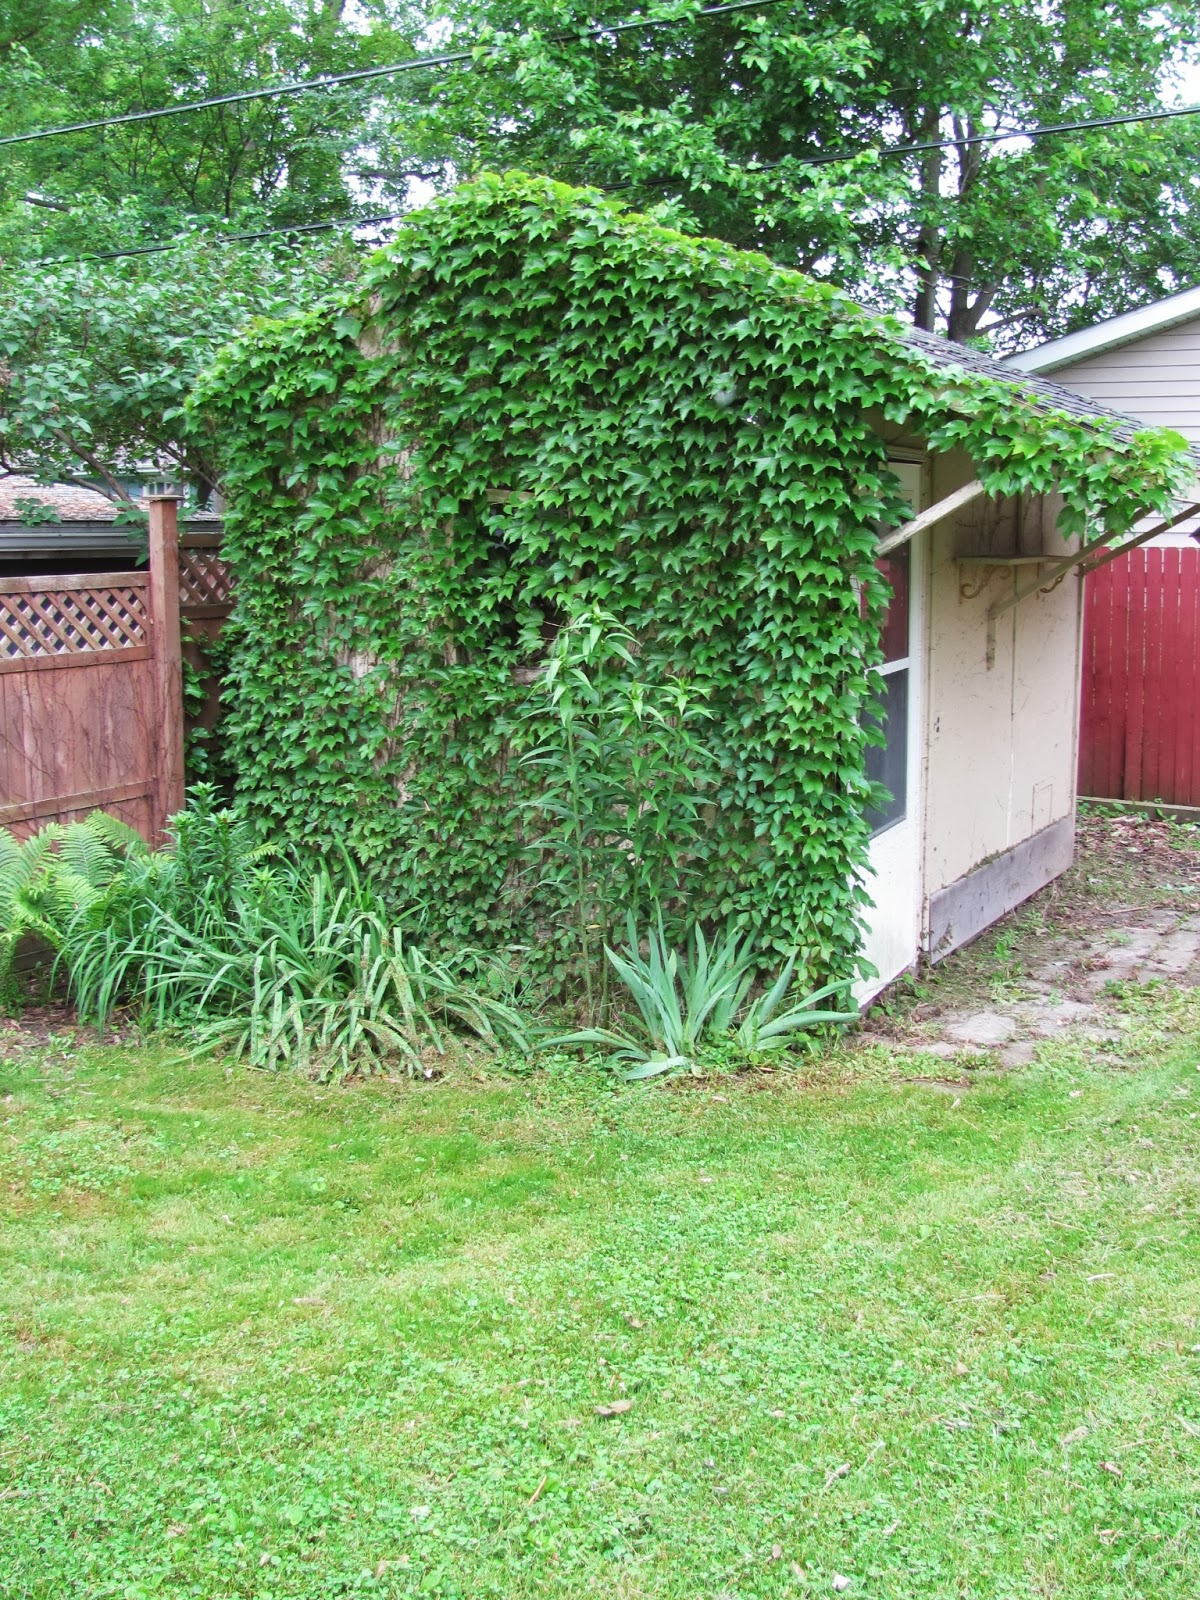 The garden shed stands with green ivy covering the side facing the house